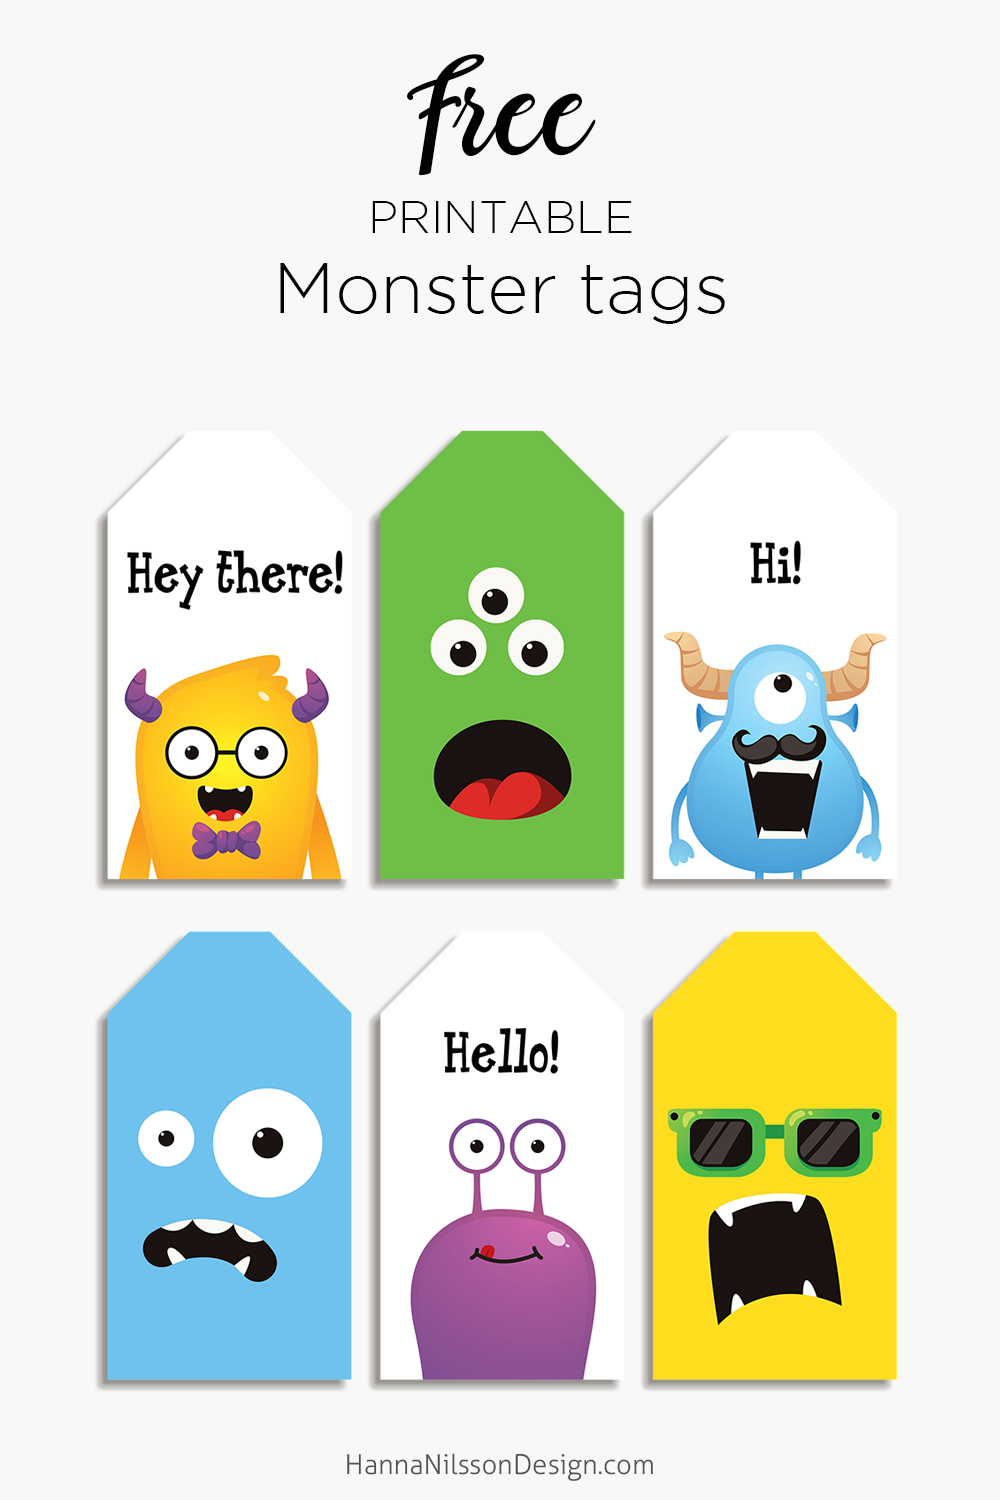 image about Printable Monster identify Absolutely free printable Monster tags Hanna Nilsson Style